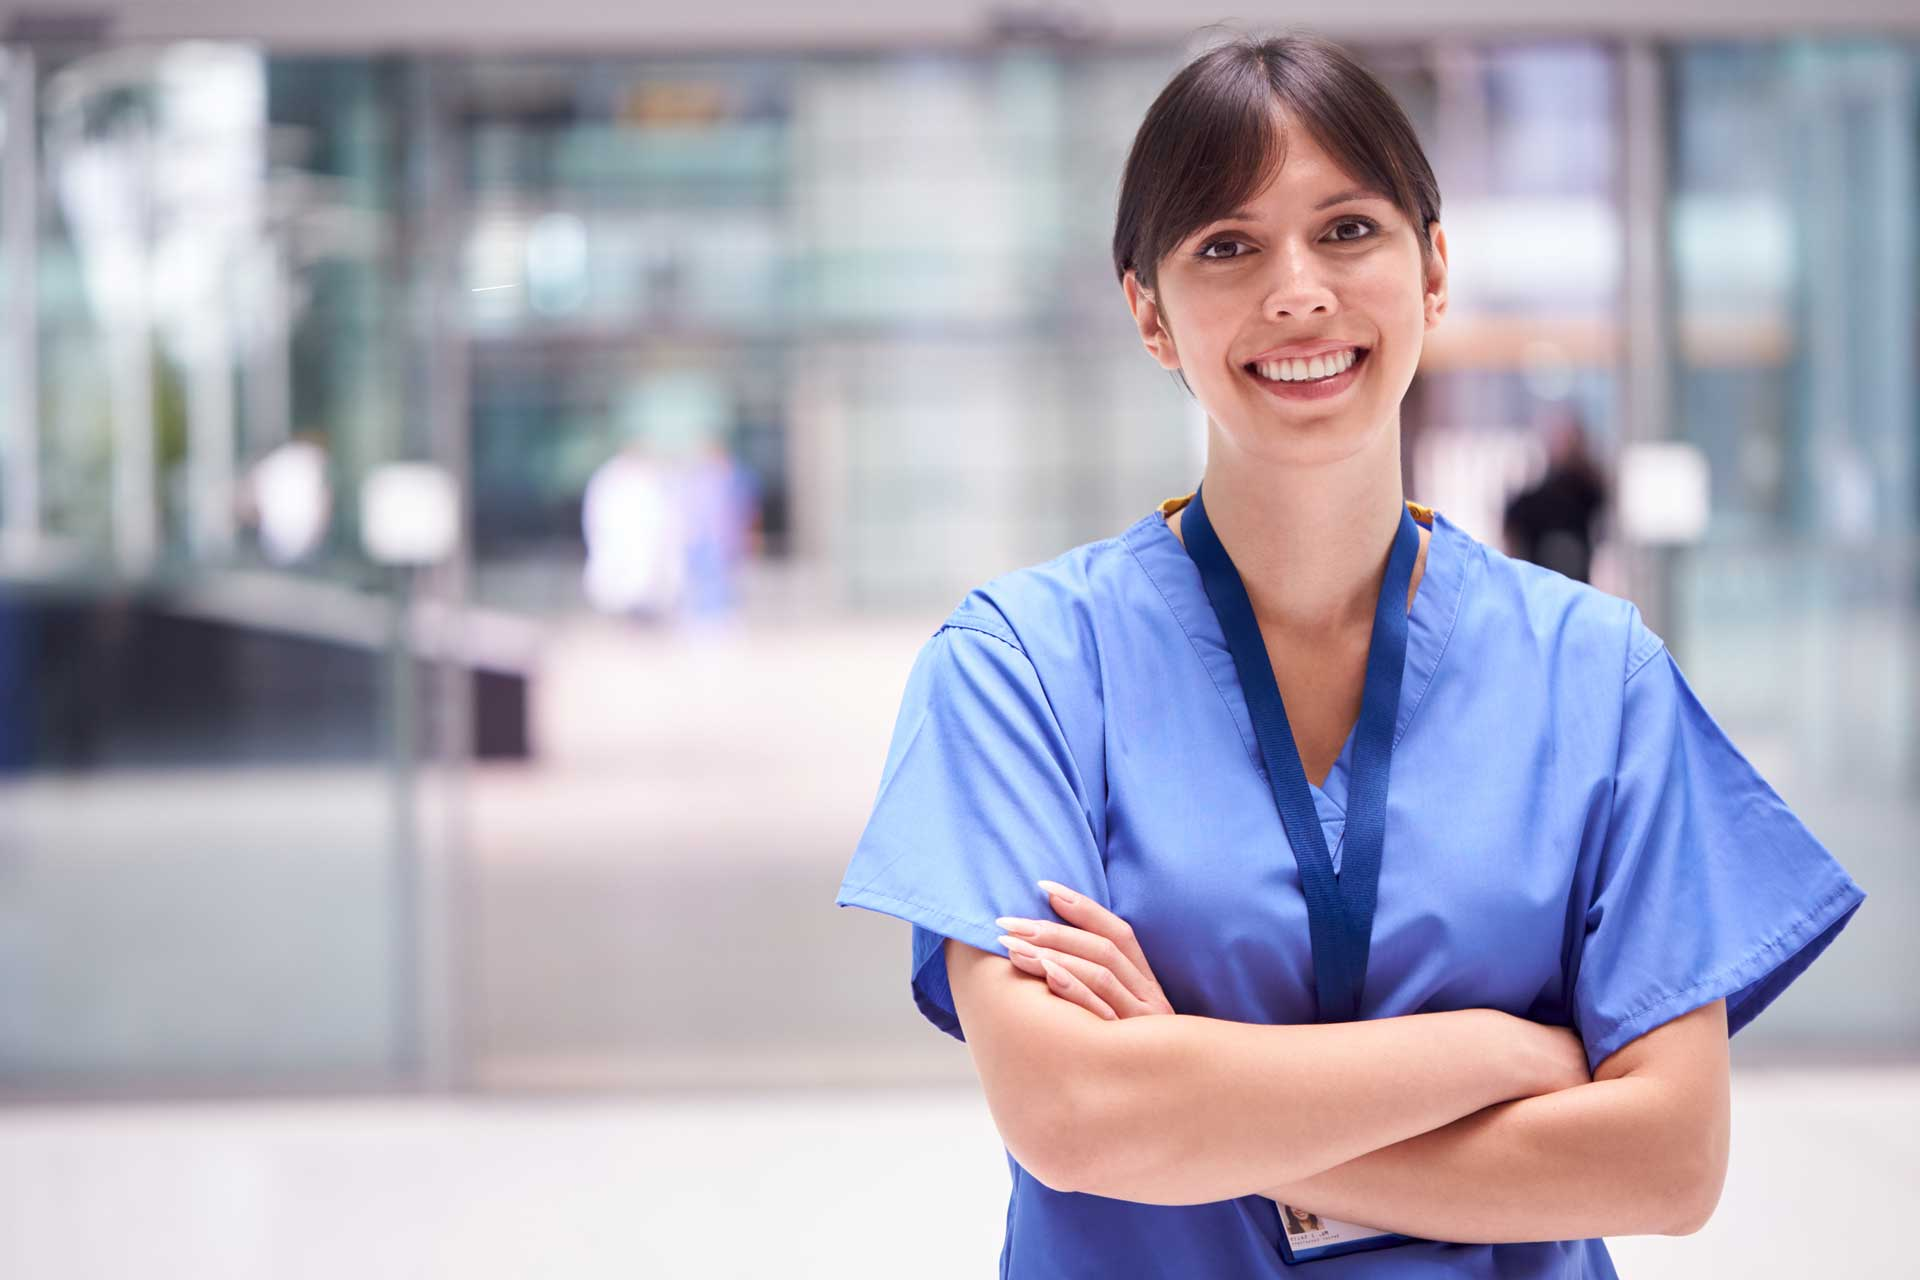 woman nurse standing and smiling